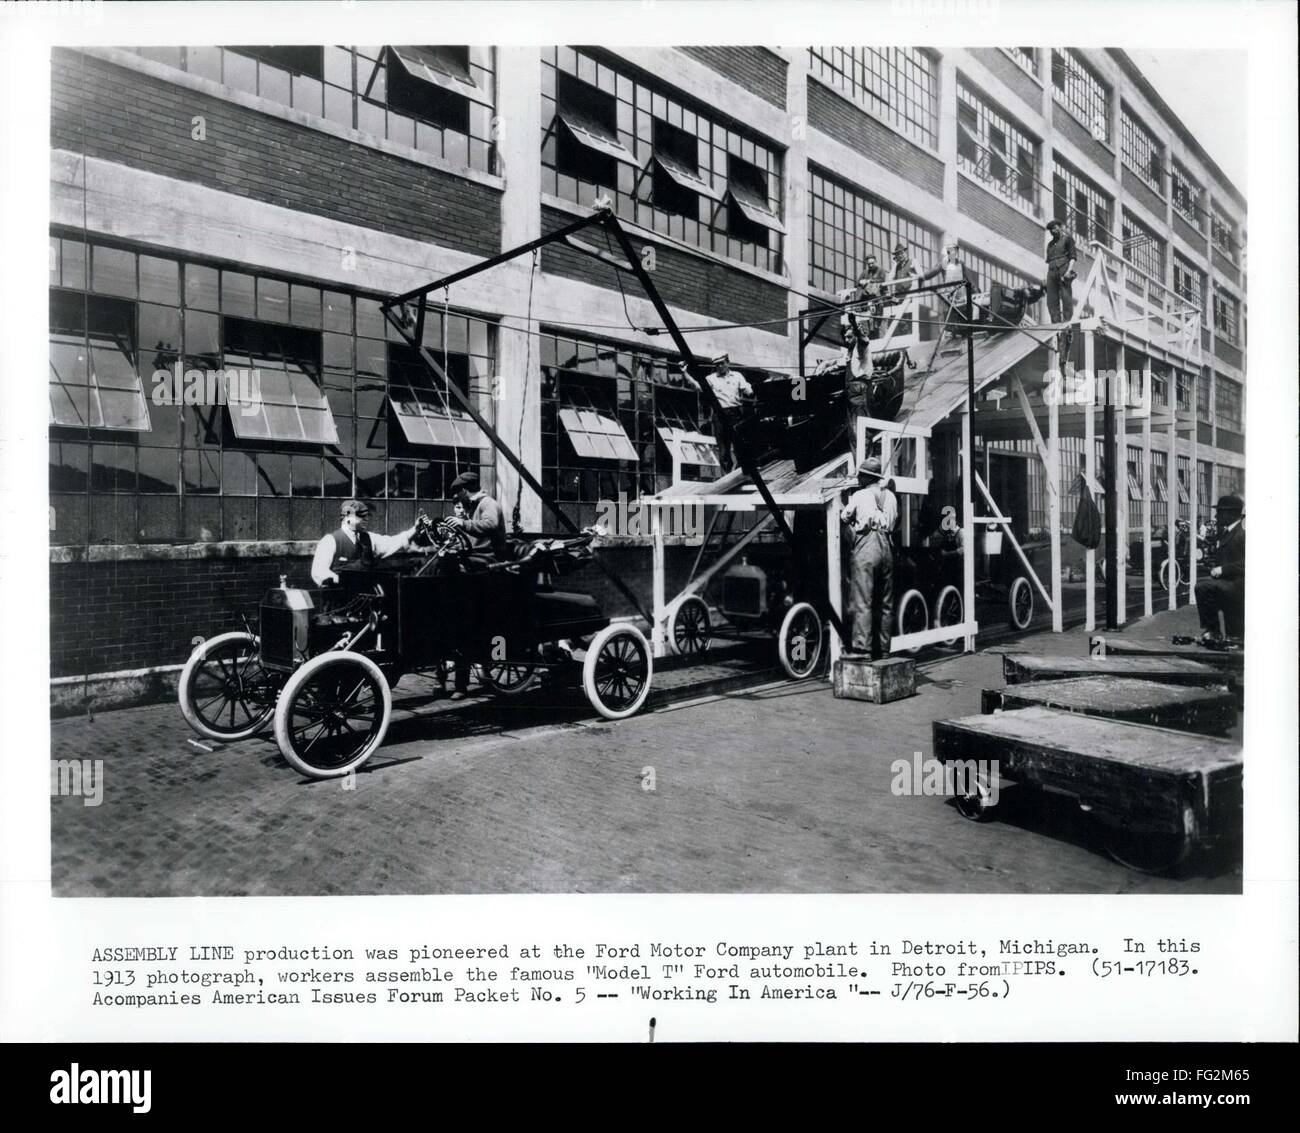 1913 assembly line production was pioneered at the ford motor company plant in detriot michigan in this 1913 photograph workers assemble the famous